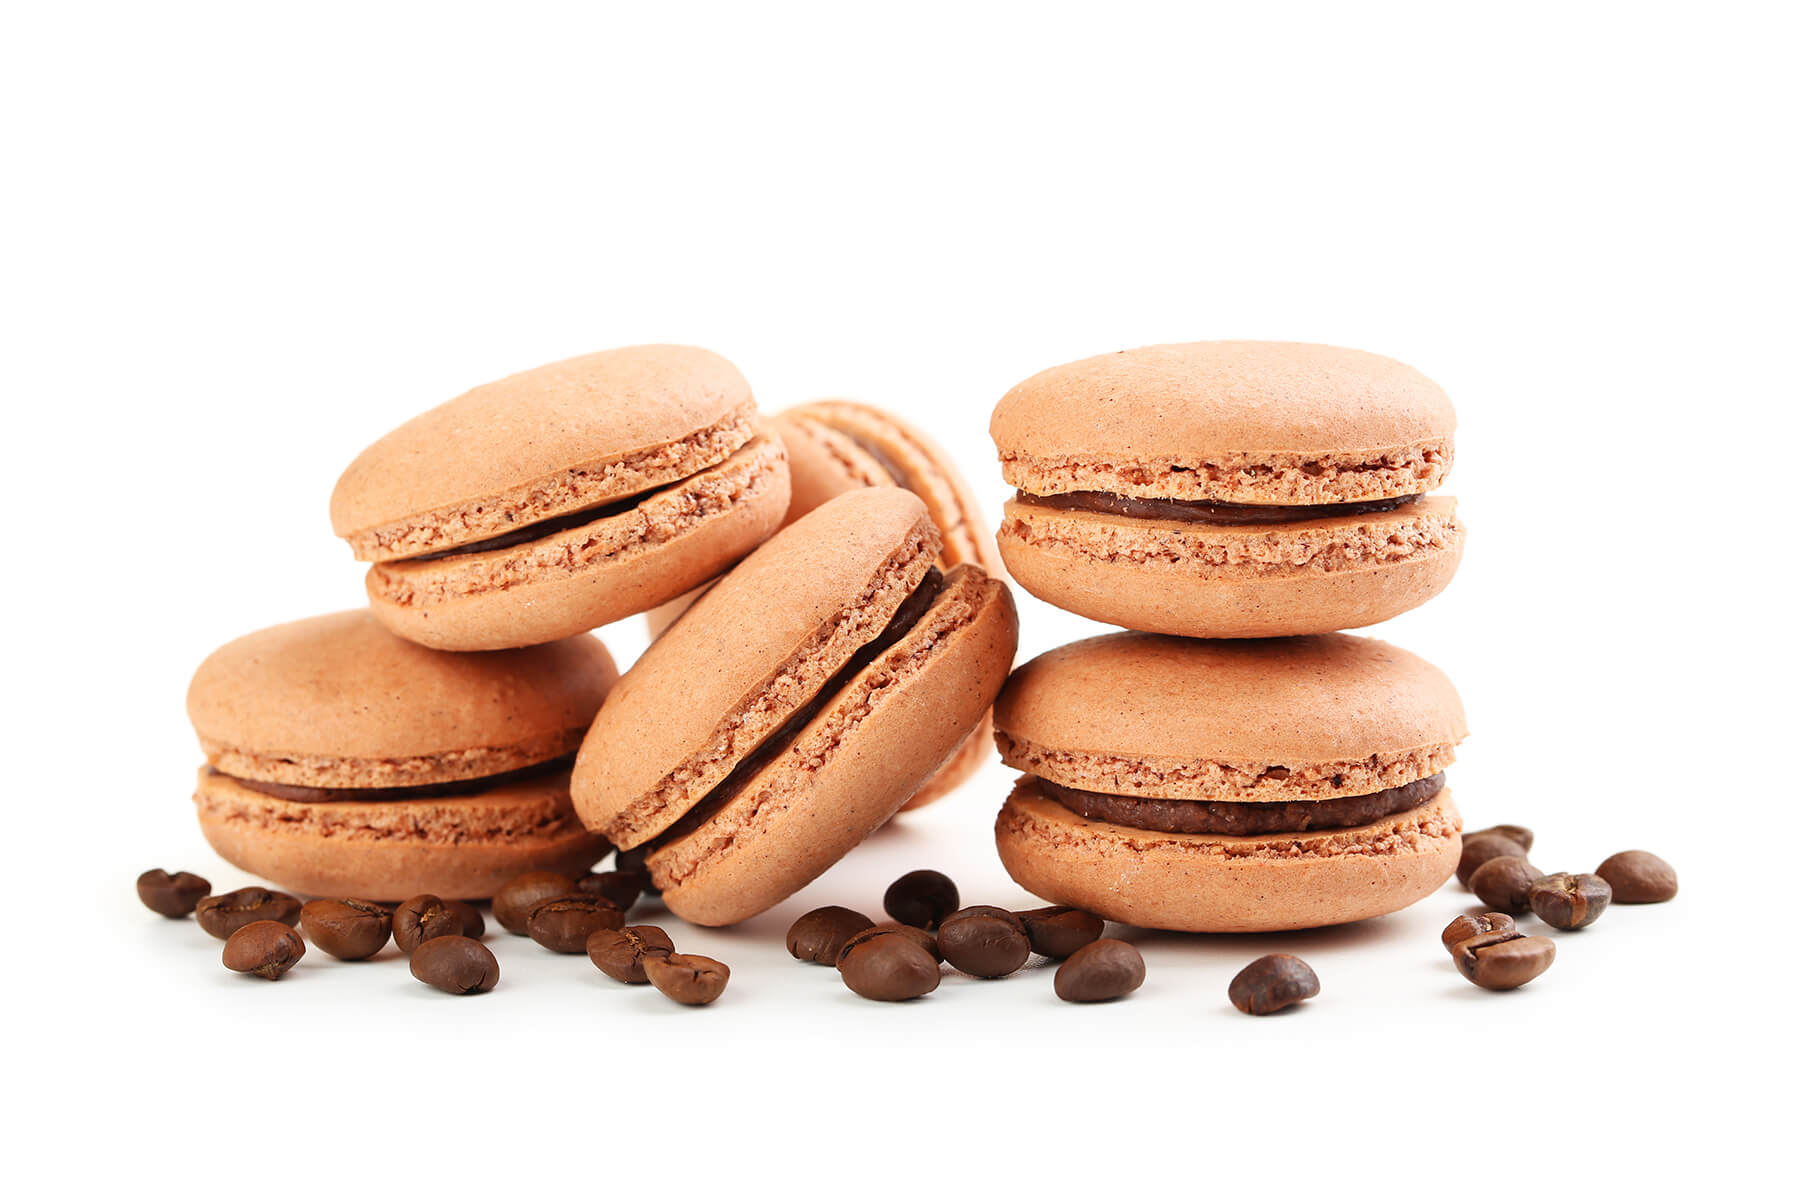 Tasty coffee macarons with coffee beans isolated on white